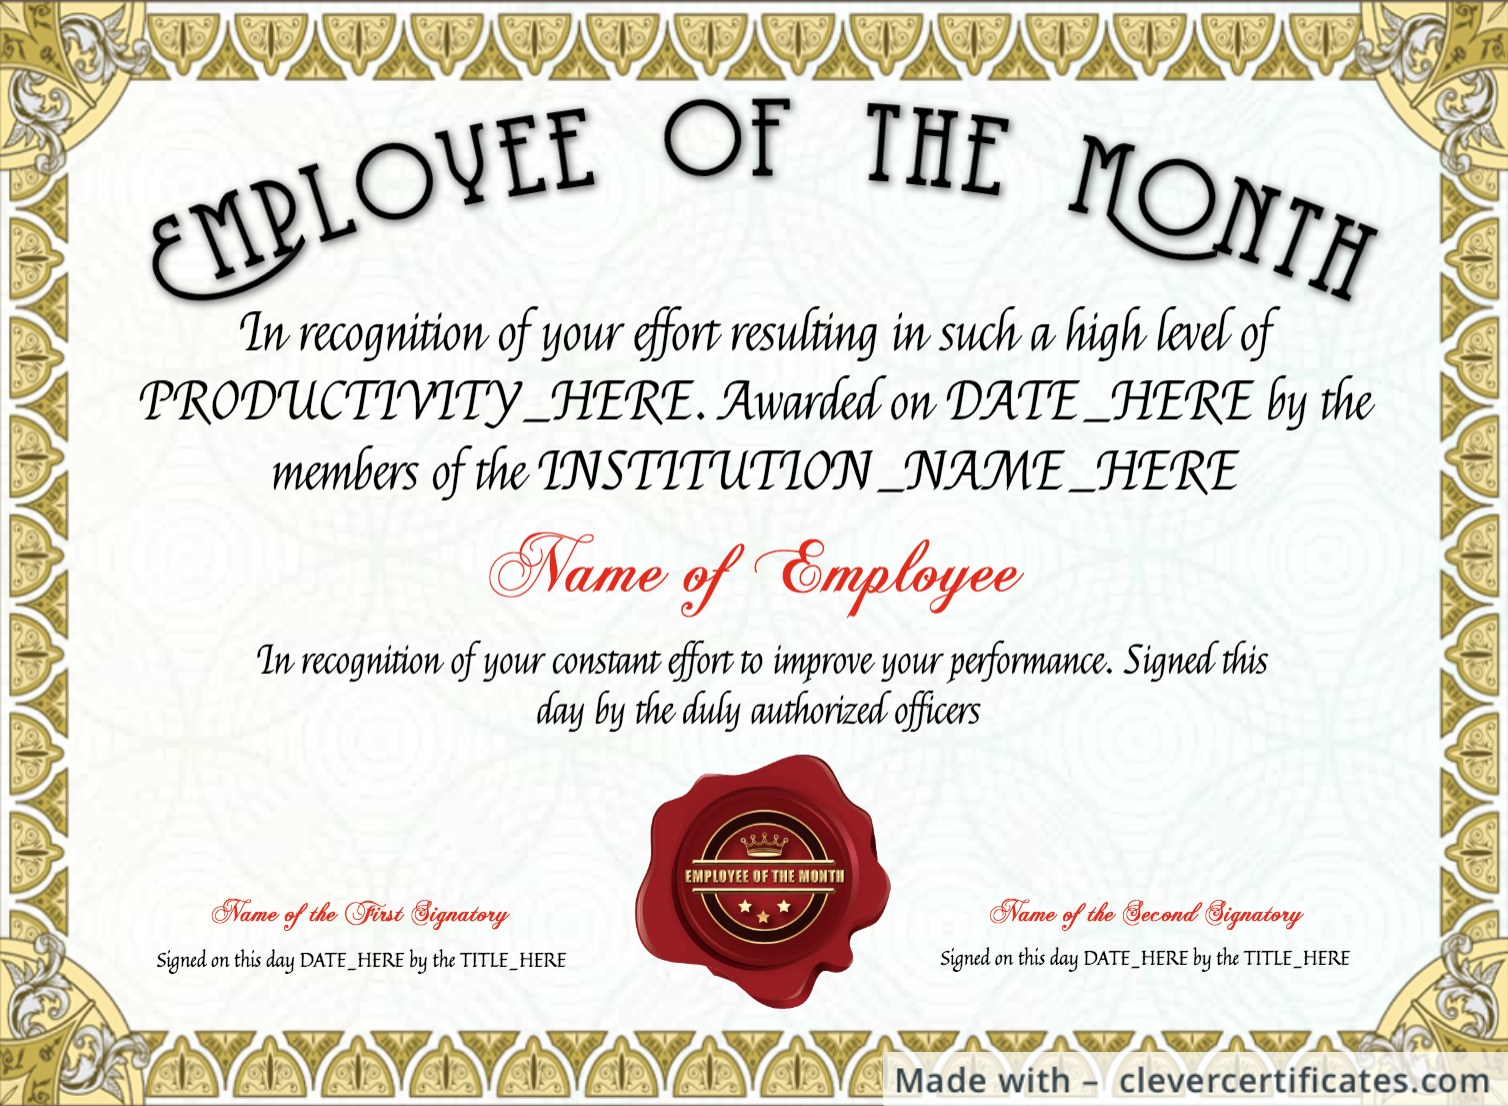 Free Employee Of The Month Certificate Template At In Employee Of The Month Certificate Template With Picture